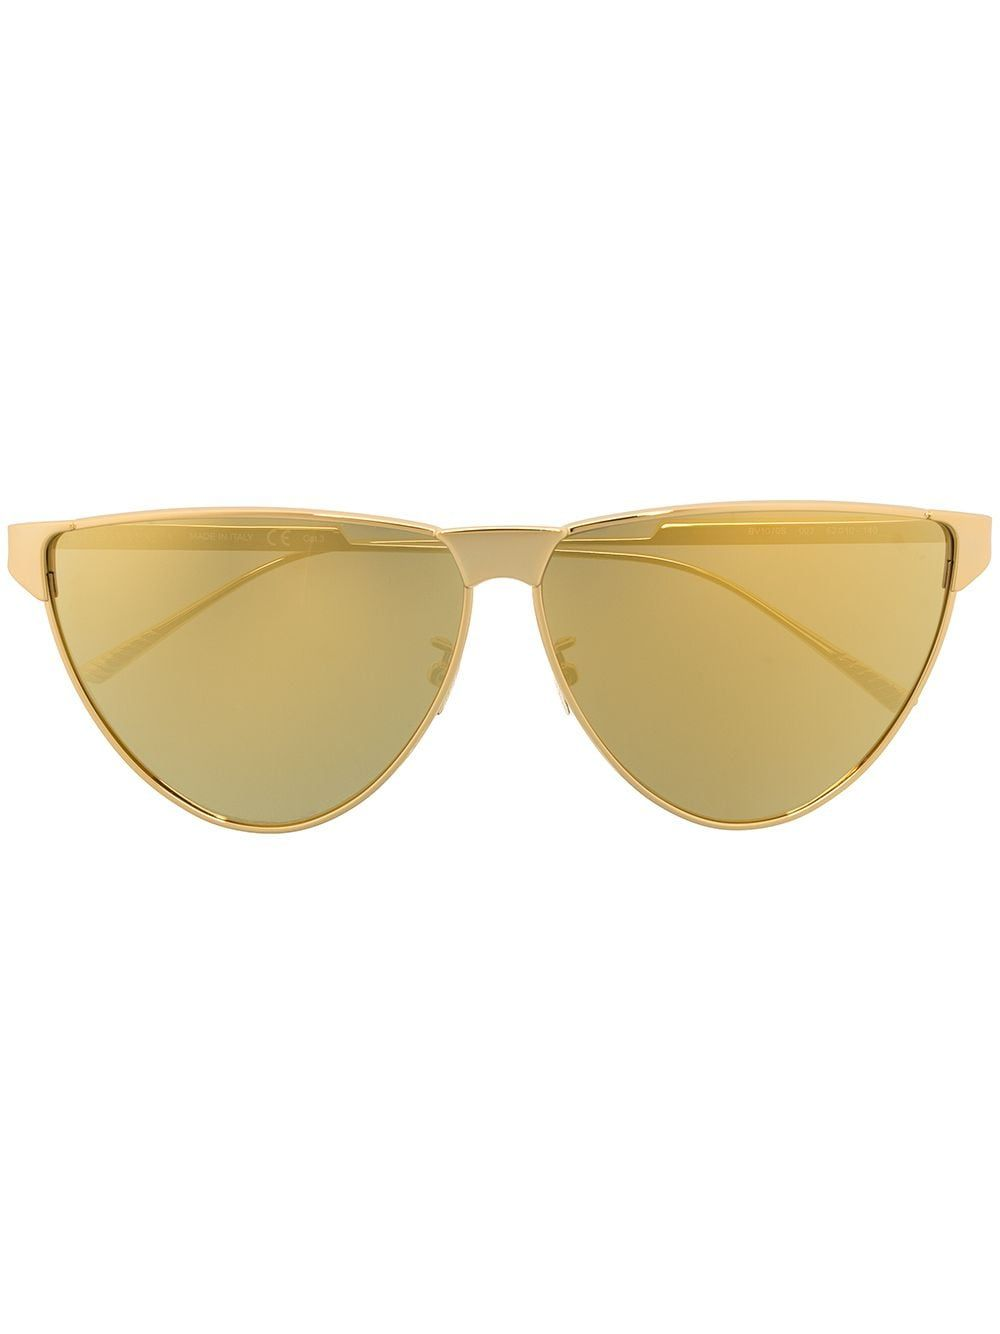 Gold metal BV1070s cat-eye sunglasses from BOTTEGA VENETA EYEWEAR featuring logo-debossed arm, yellow tinted lenses, nose pads and cat-eye frame. We know you'll look after them, but these glasses come with protection, just in case.